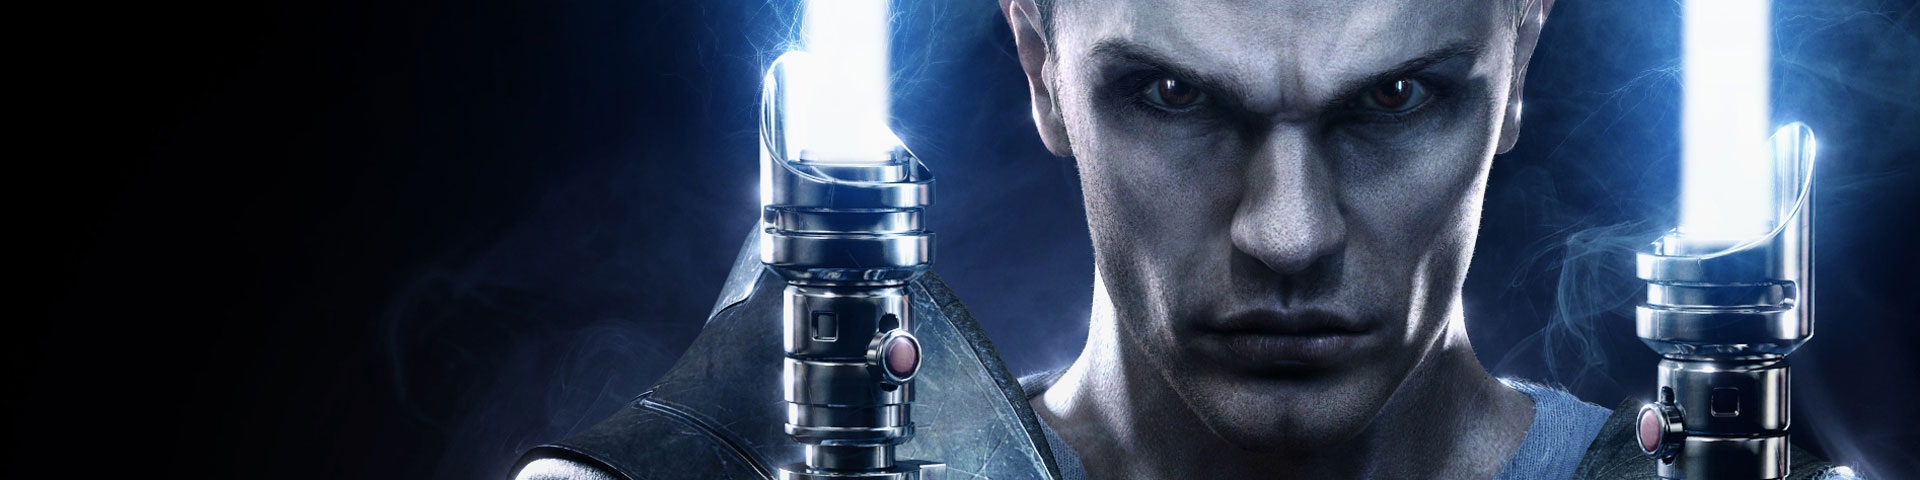 A close-up view of Starkiller, with two blue-white lightsabers held up to either side of his face.